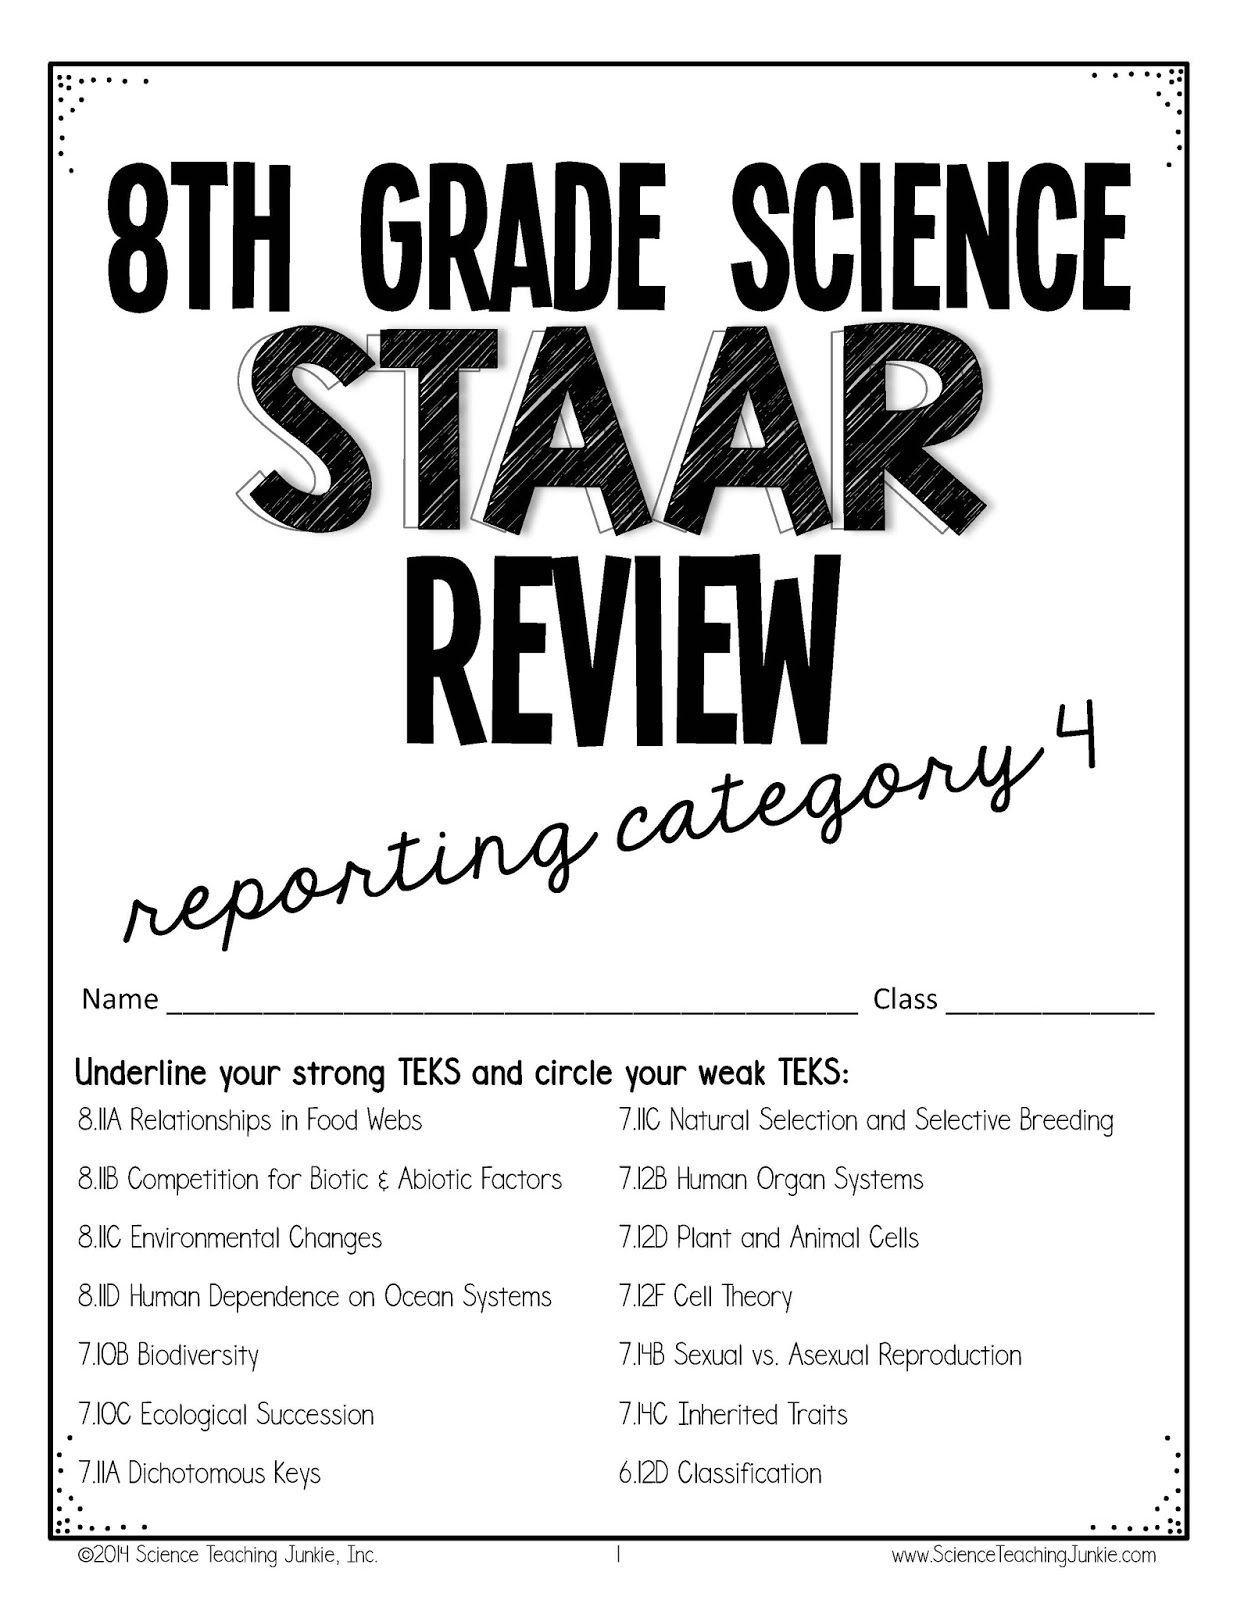 Science Teaching Junkie, Inc.: 8th grade Science STAAR Review